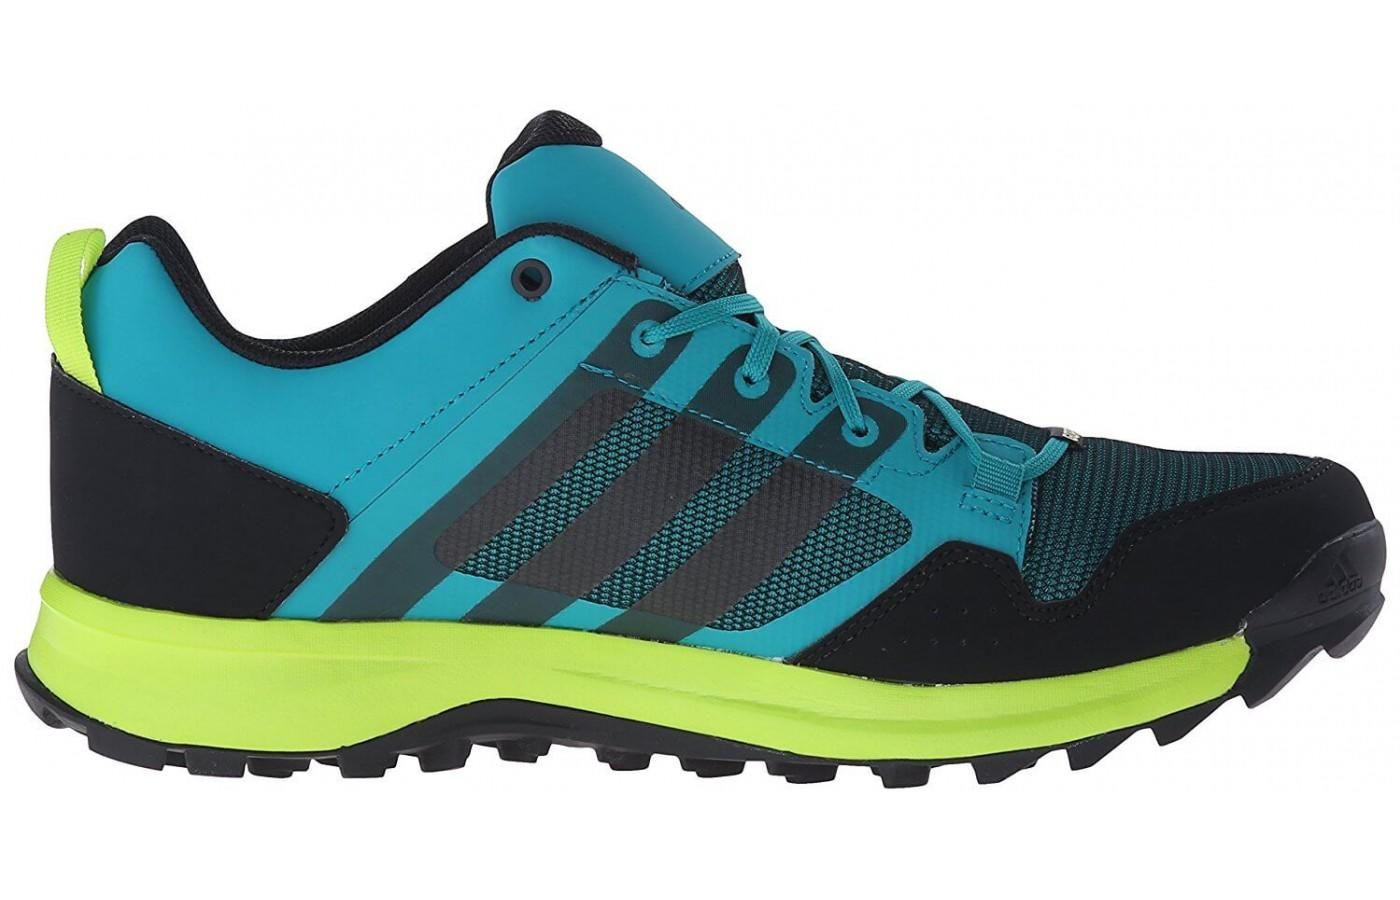 Even though the shoe is waterproof, it's easy to see how breathable the upper material is too.